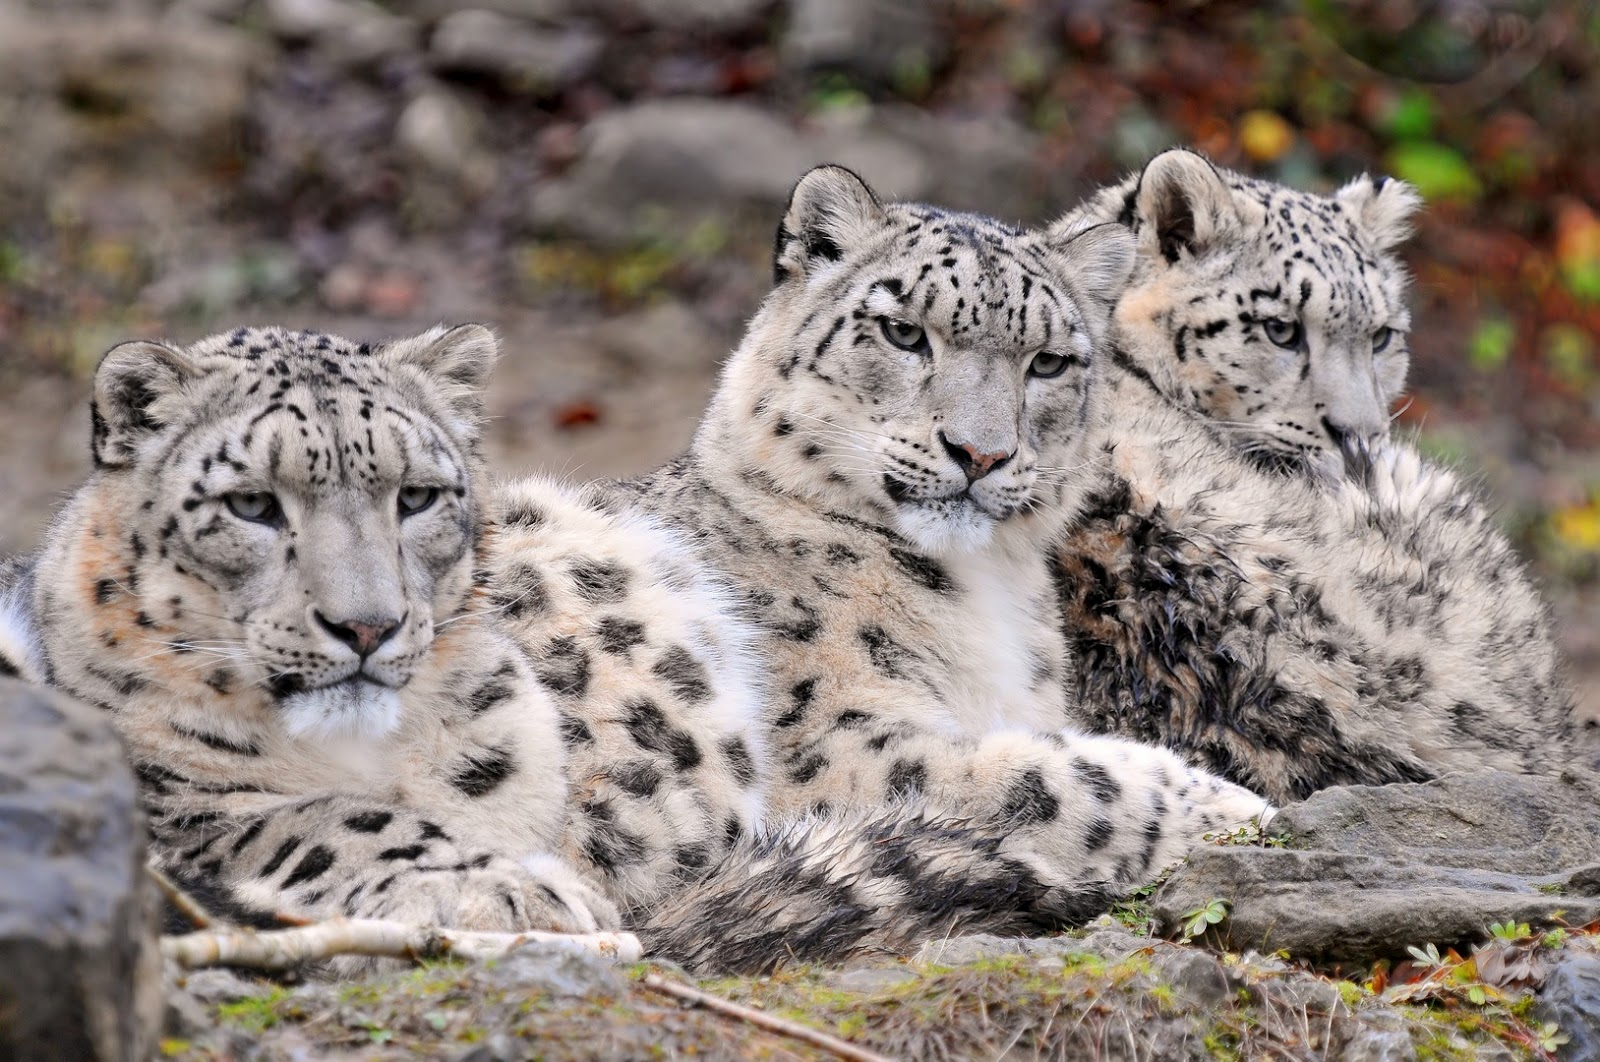 the snow leopard The strikingly beautiful snow leopard remains one of the most mysterious cats in the world.